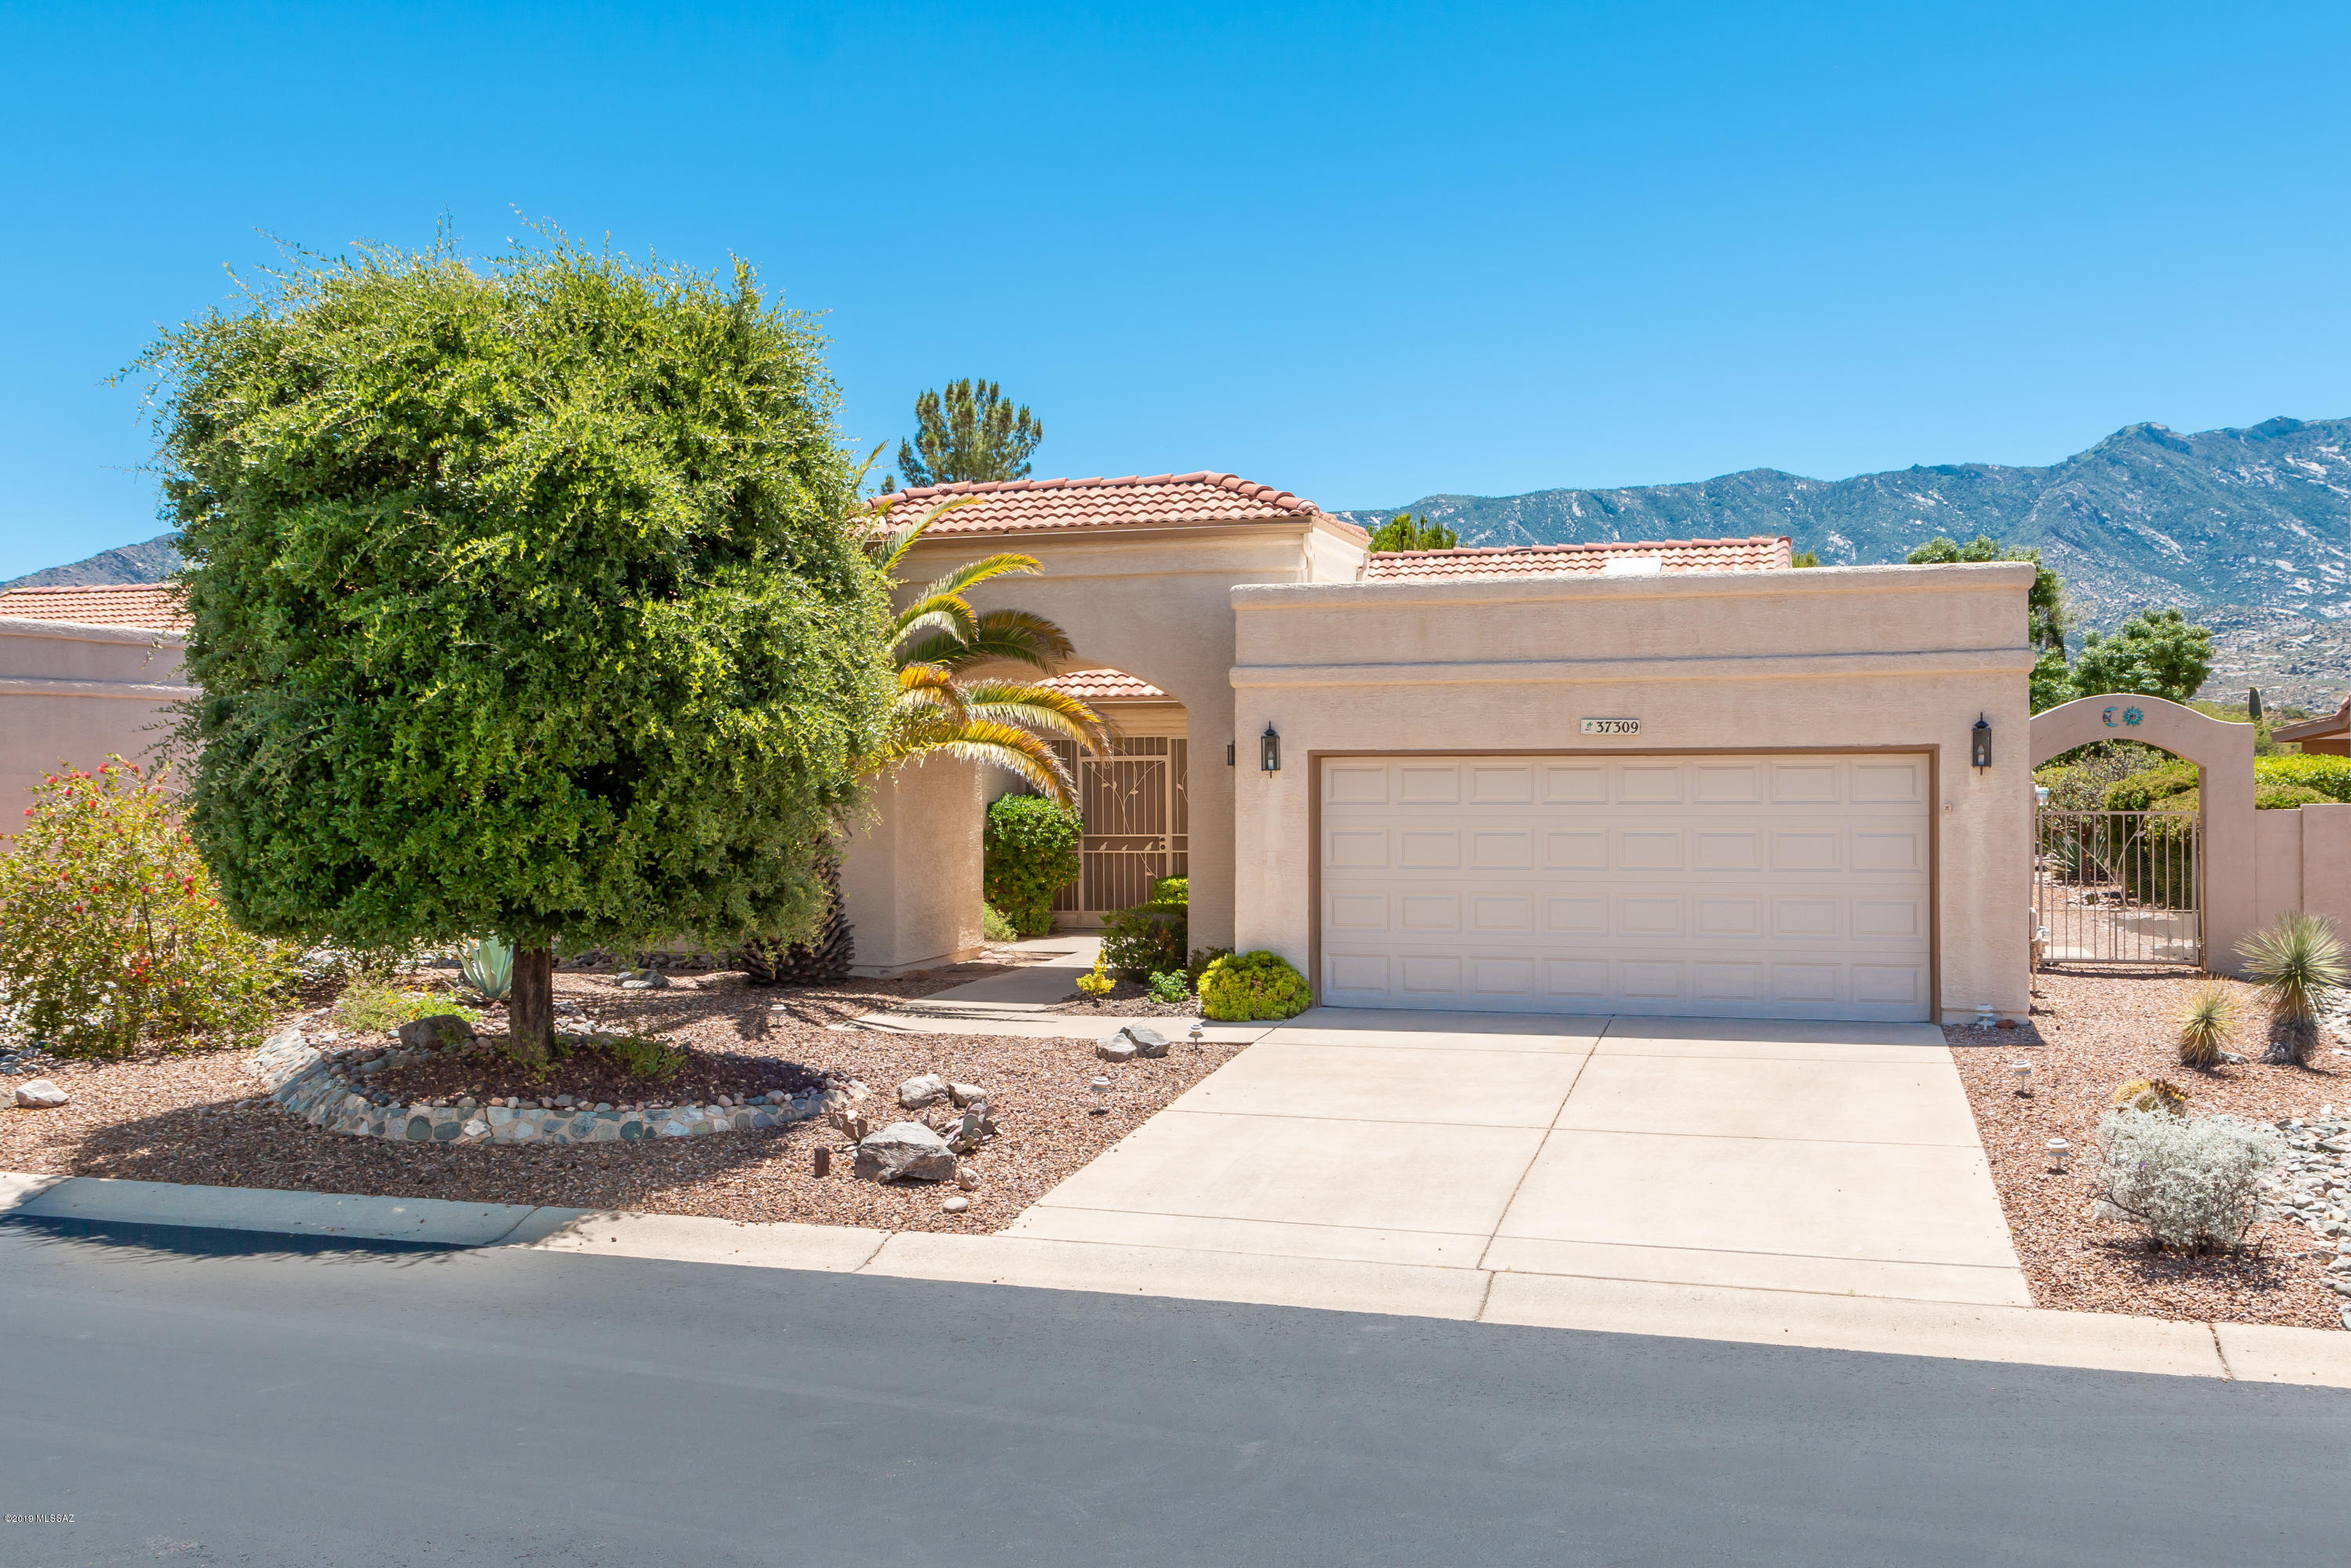 Photo of 37309 S Blackfoot Drive, Saddlebrooke, AZ 85739